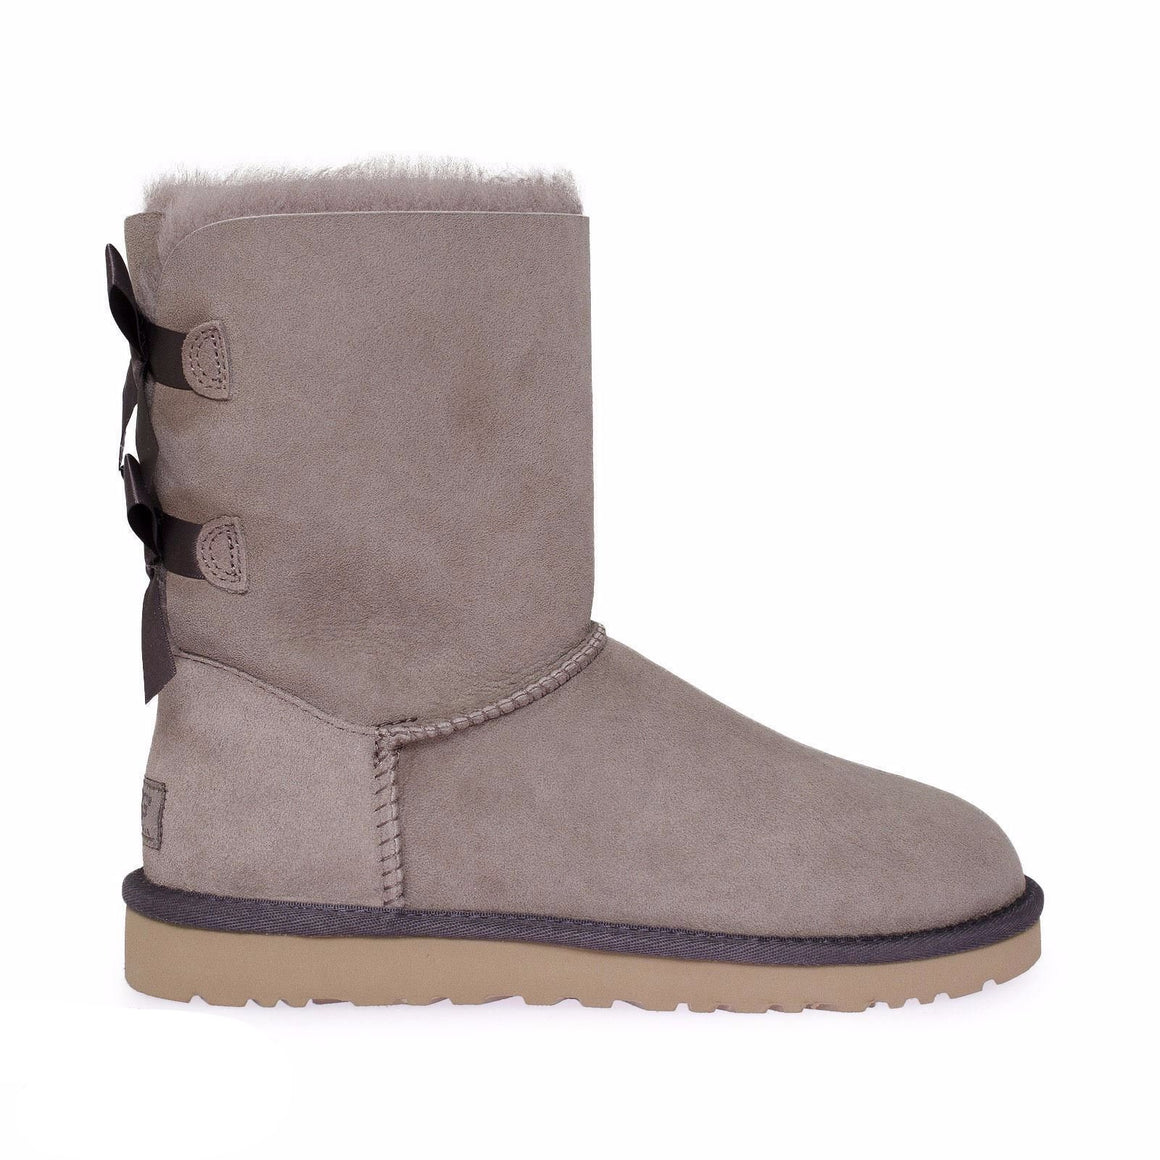 UGG Bailey Bow Stormy Grey Boots